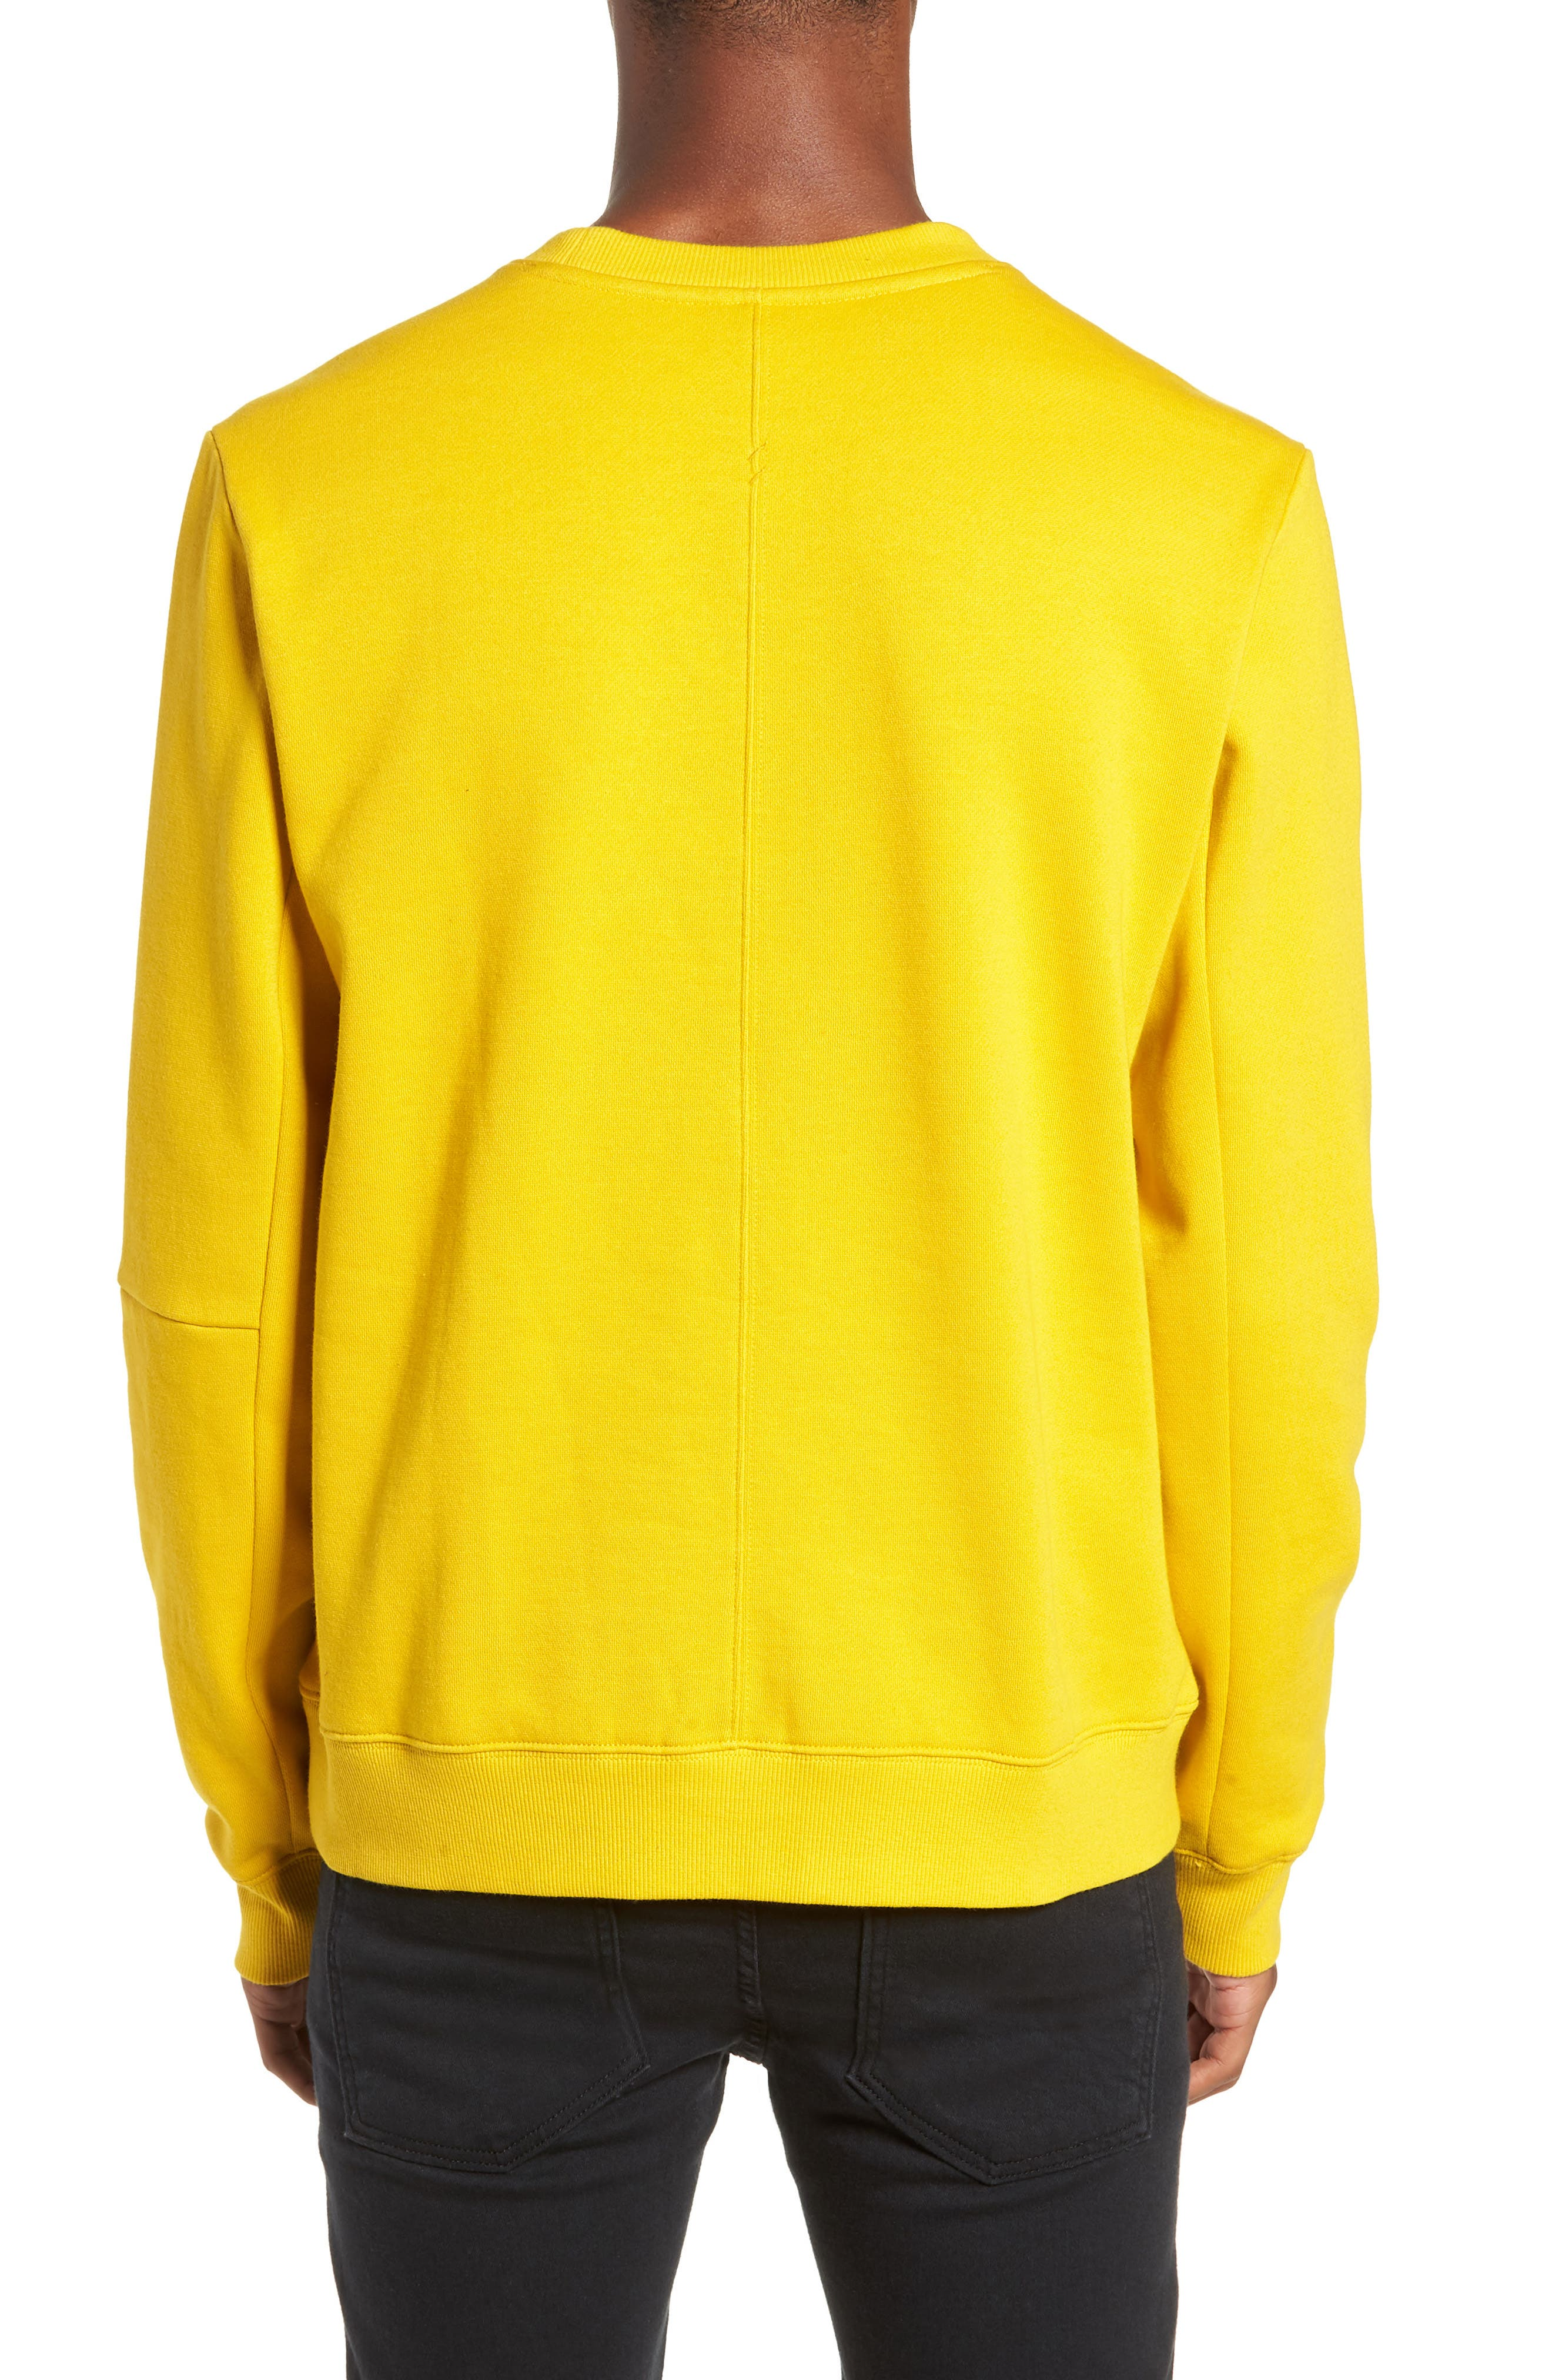 Loma Sweatshirt,                             Alternate thumbnail 2, color,                             MUSTARD YELLOW